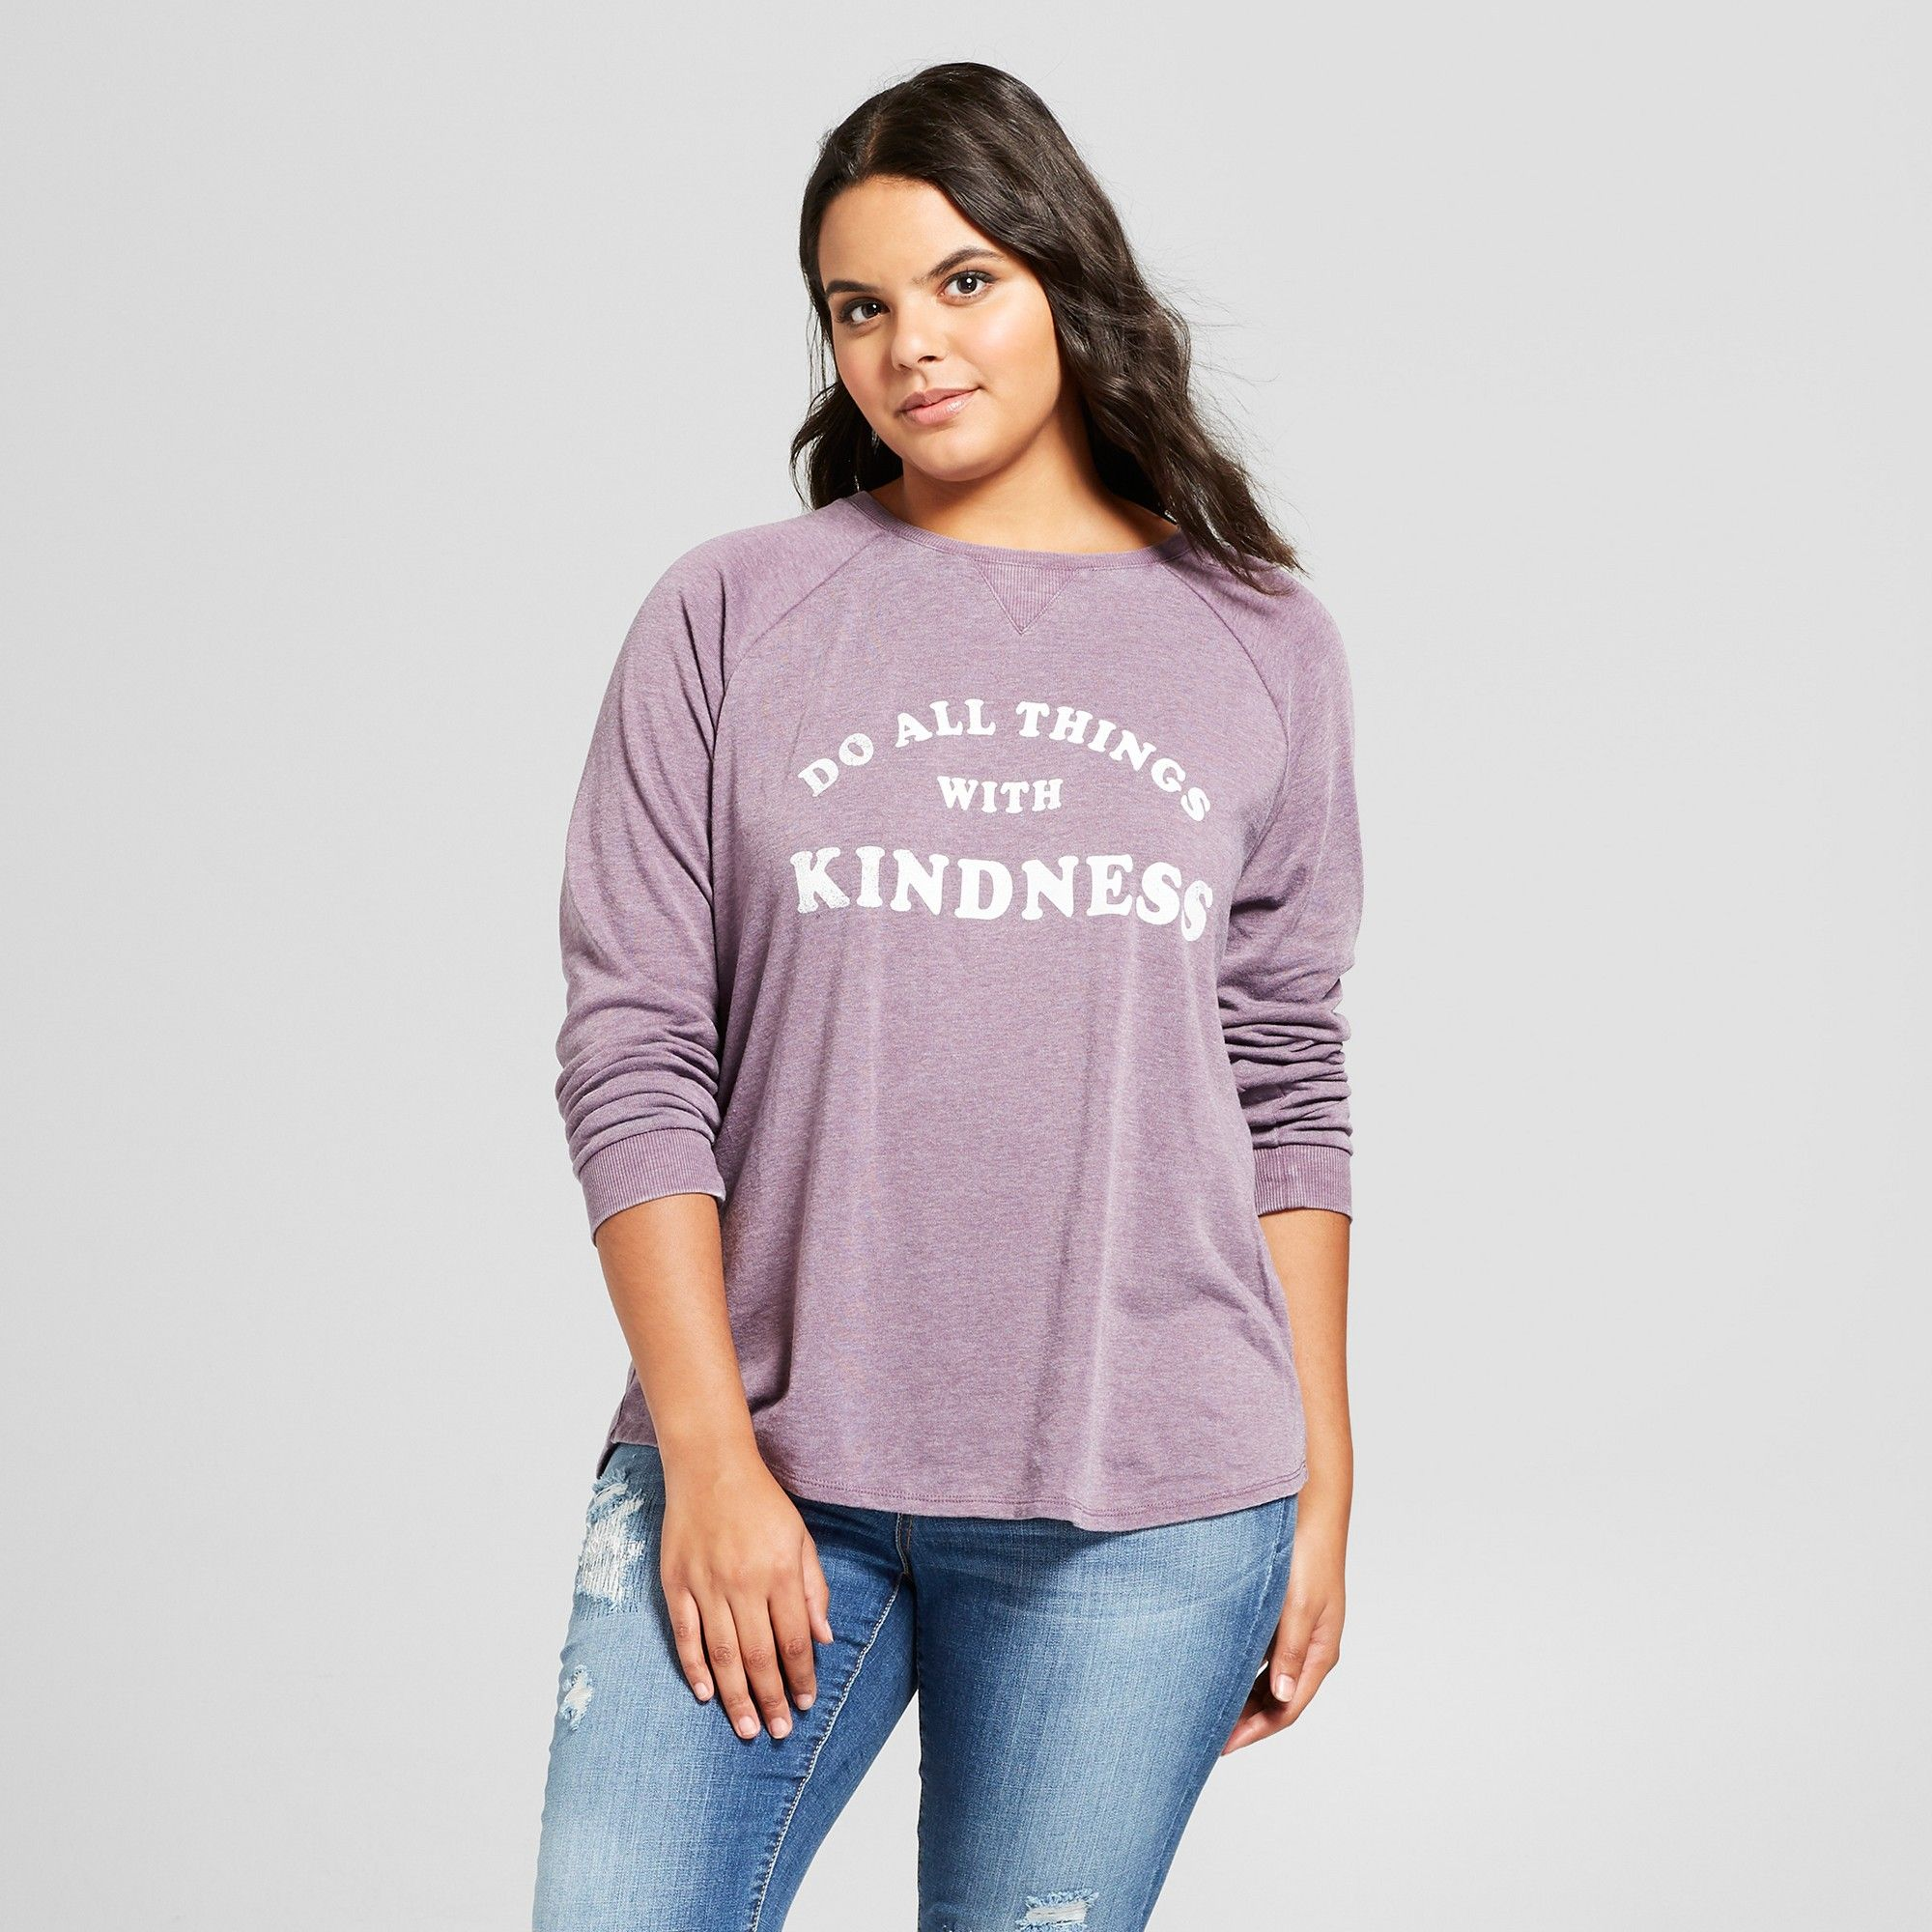 4bea0c32664 Women s Plus Size Do All Things With Kindness Graphic Sweatshirt - Grayson  Threads (Juniors ) - Charcoal 1X